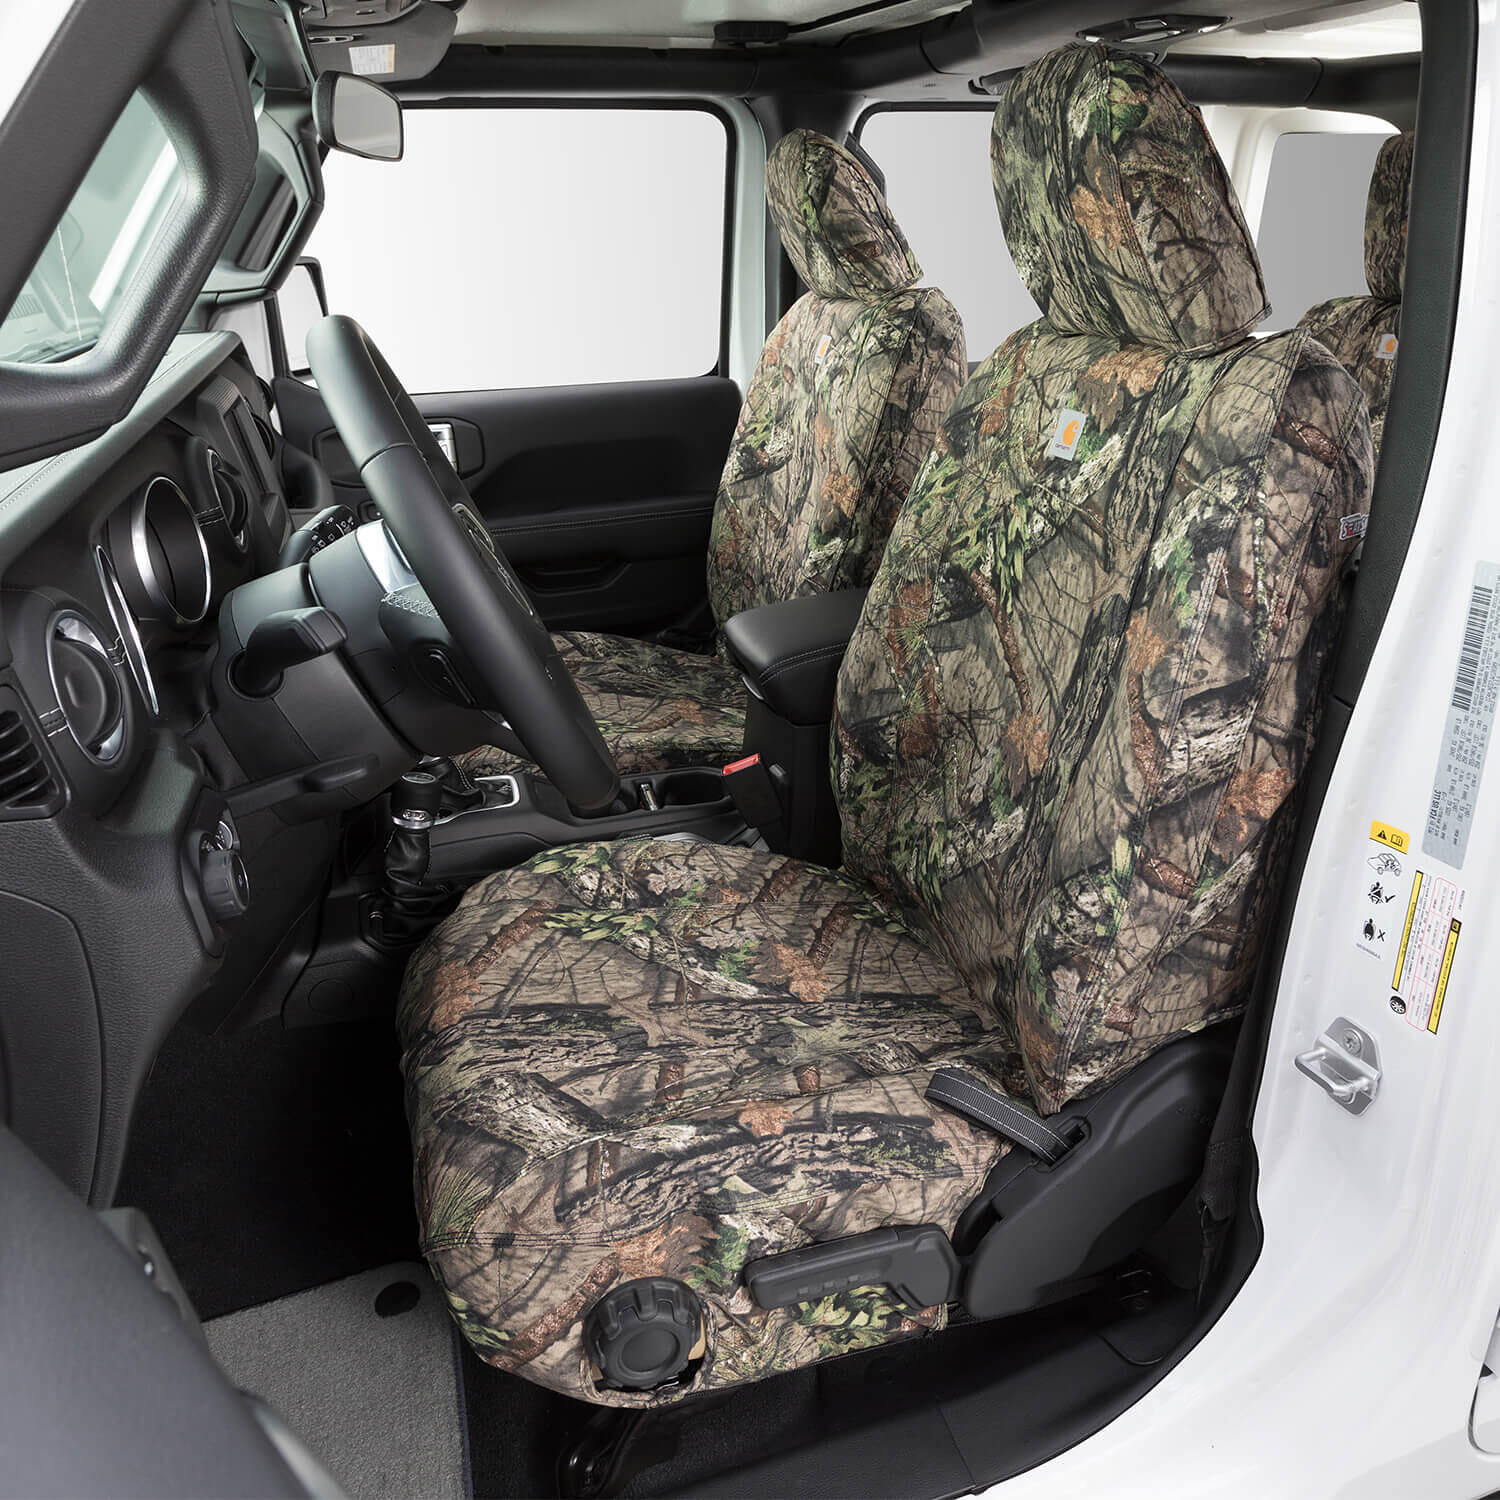 Duck Weave Break-Up Country Covercraft Carhartt Mossy Oak Camo SeatSaver Front Row Custom Fit Seat Cover for Select Jeep Wrangler Models SSC1228CAMB